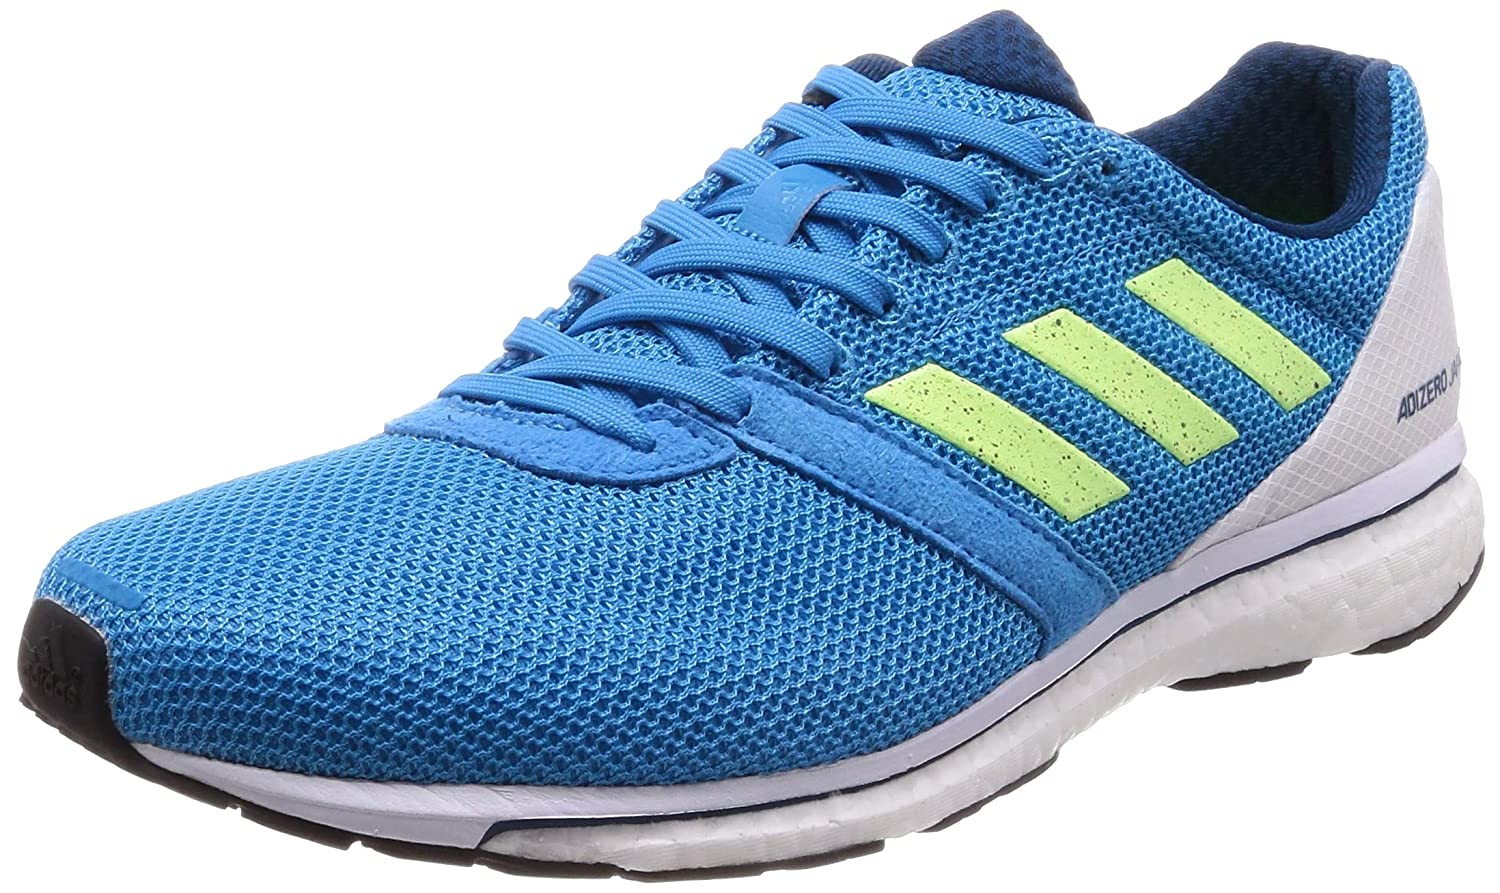 Details about adidas Adizero Adios 4 Boost Mens Running Shoes Blue